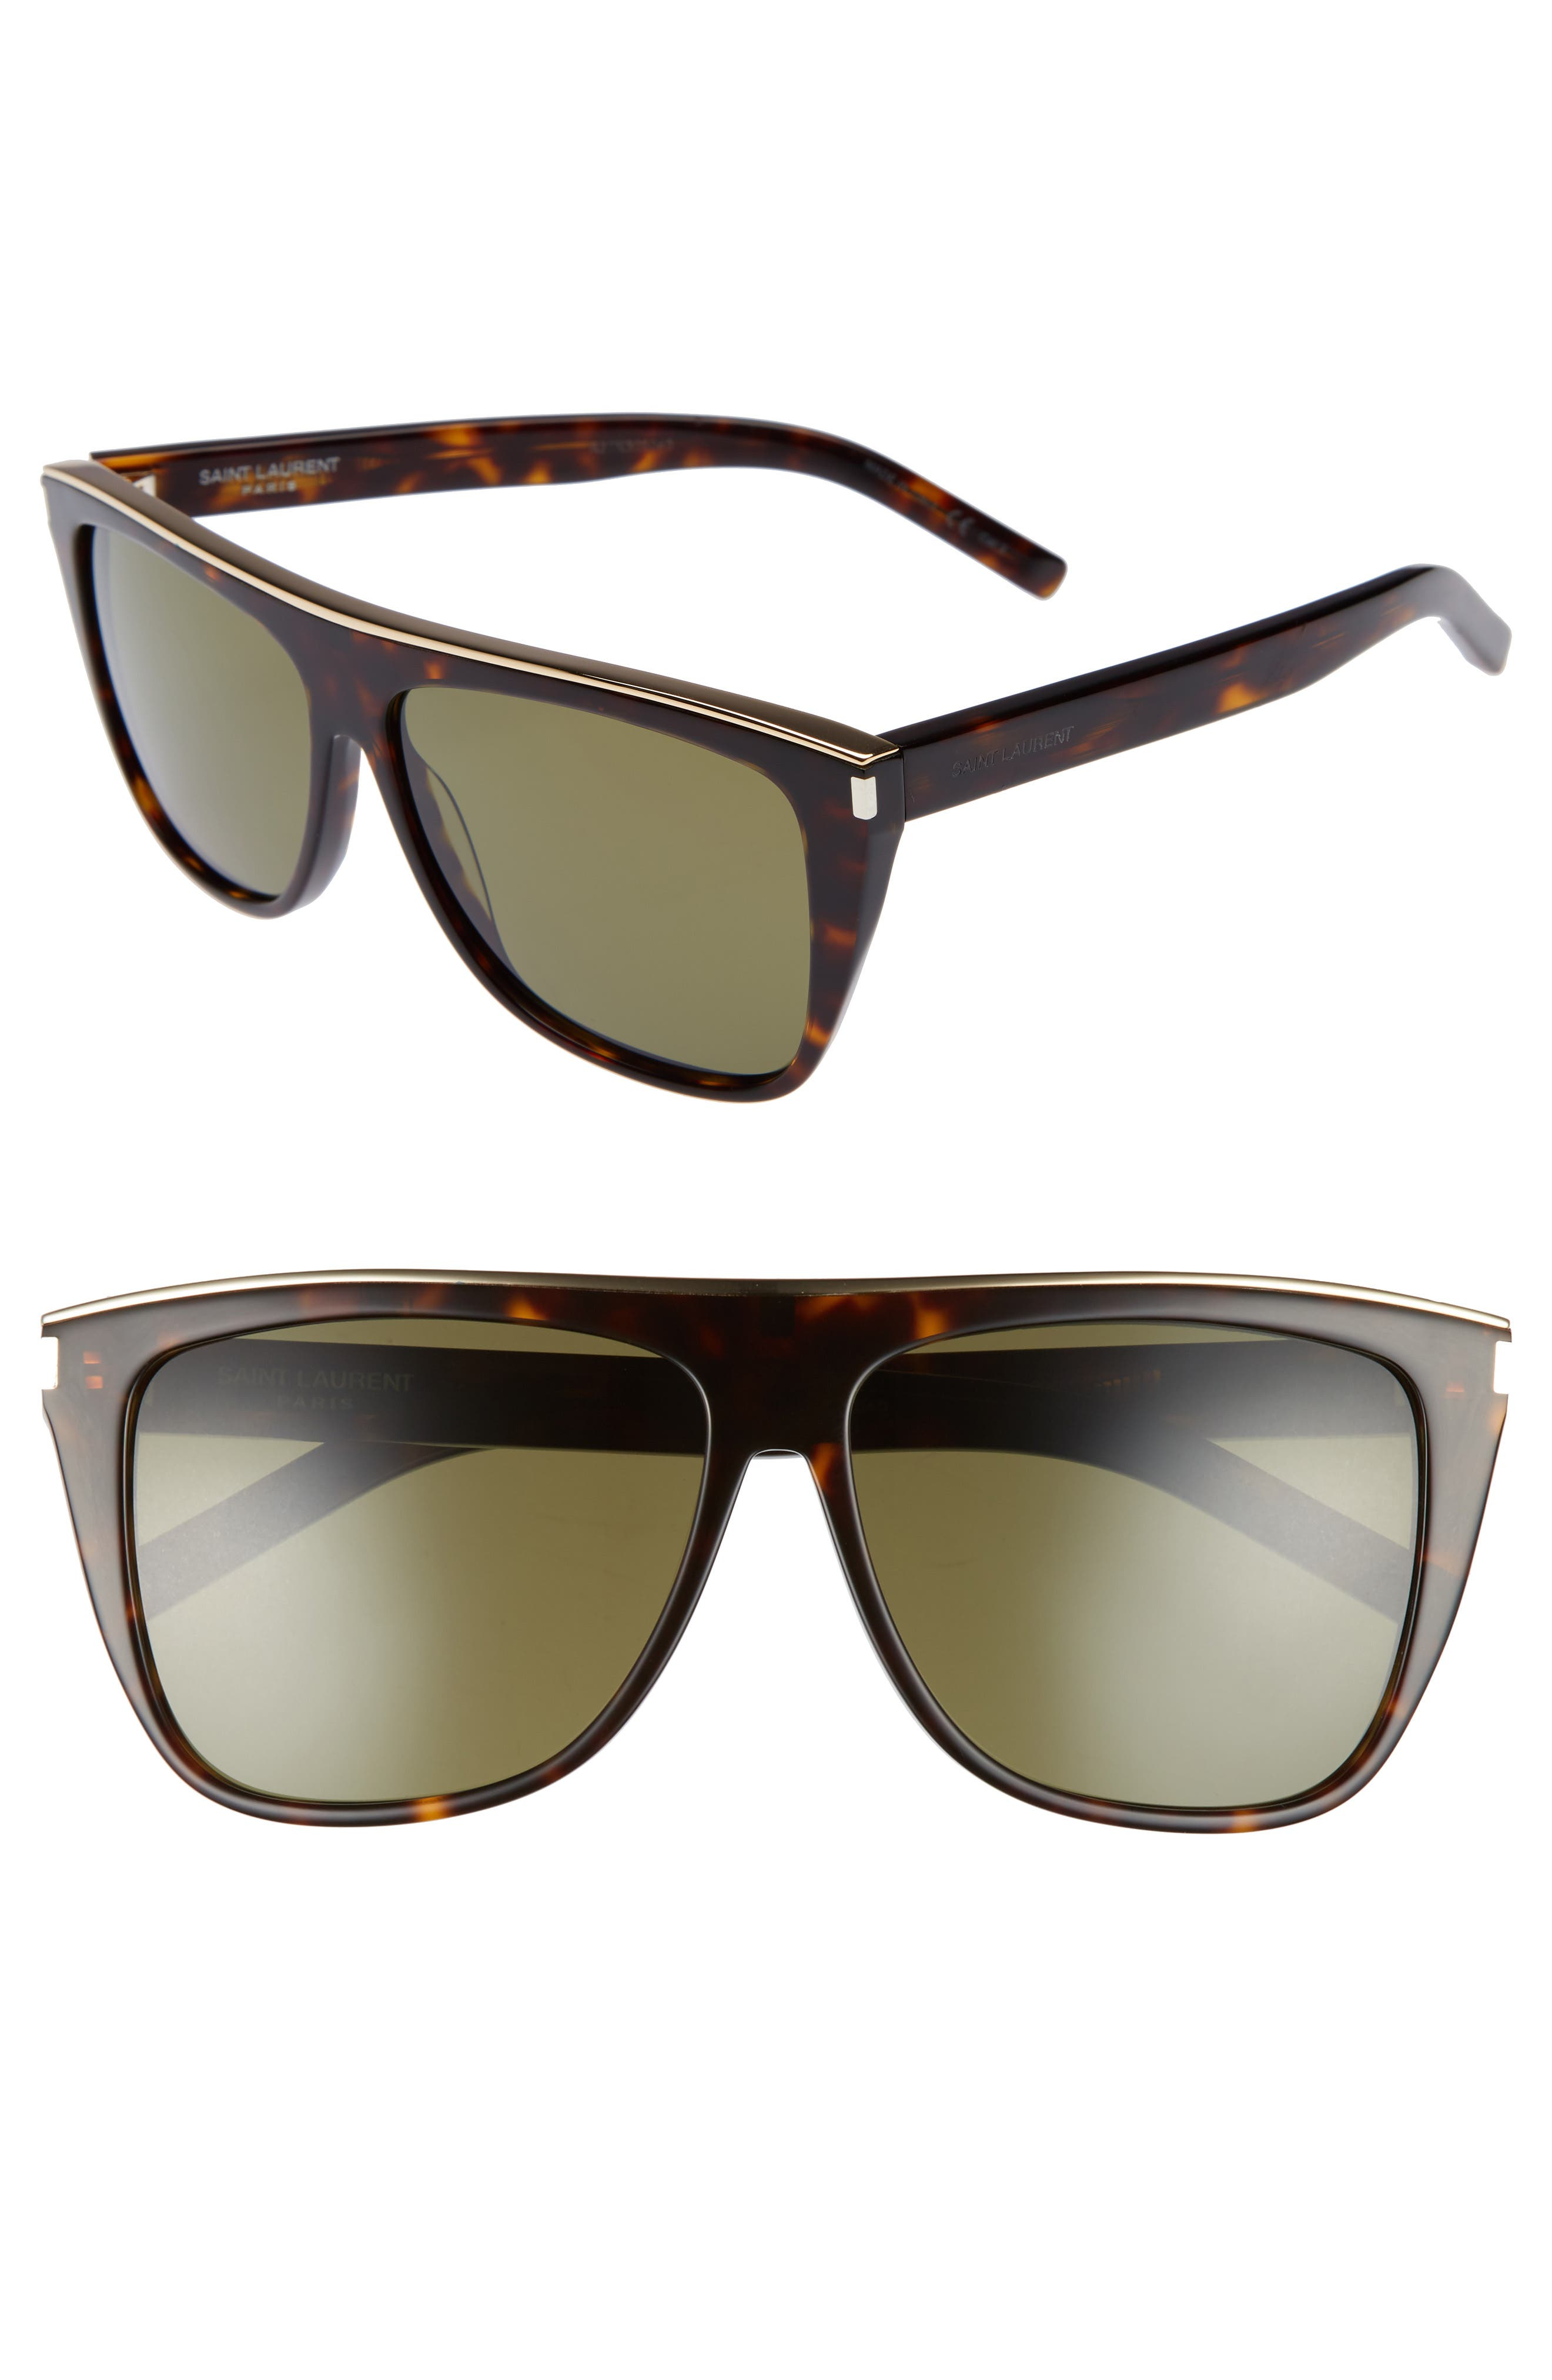 Saint Laurent Combi 5m Flat Top Sunglasses - Havana